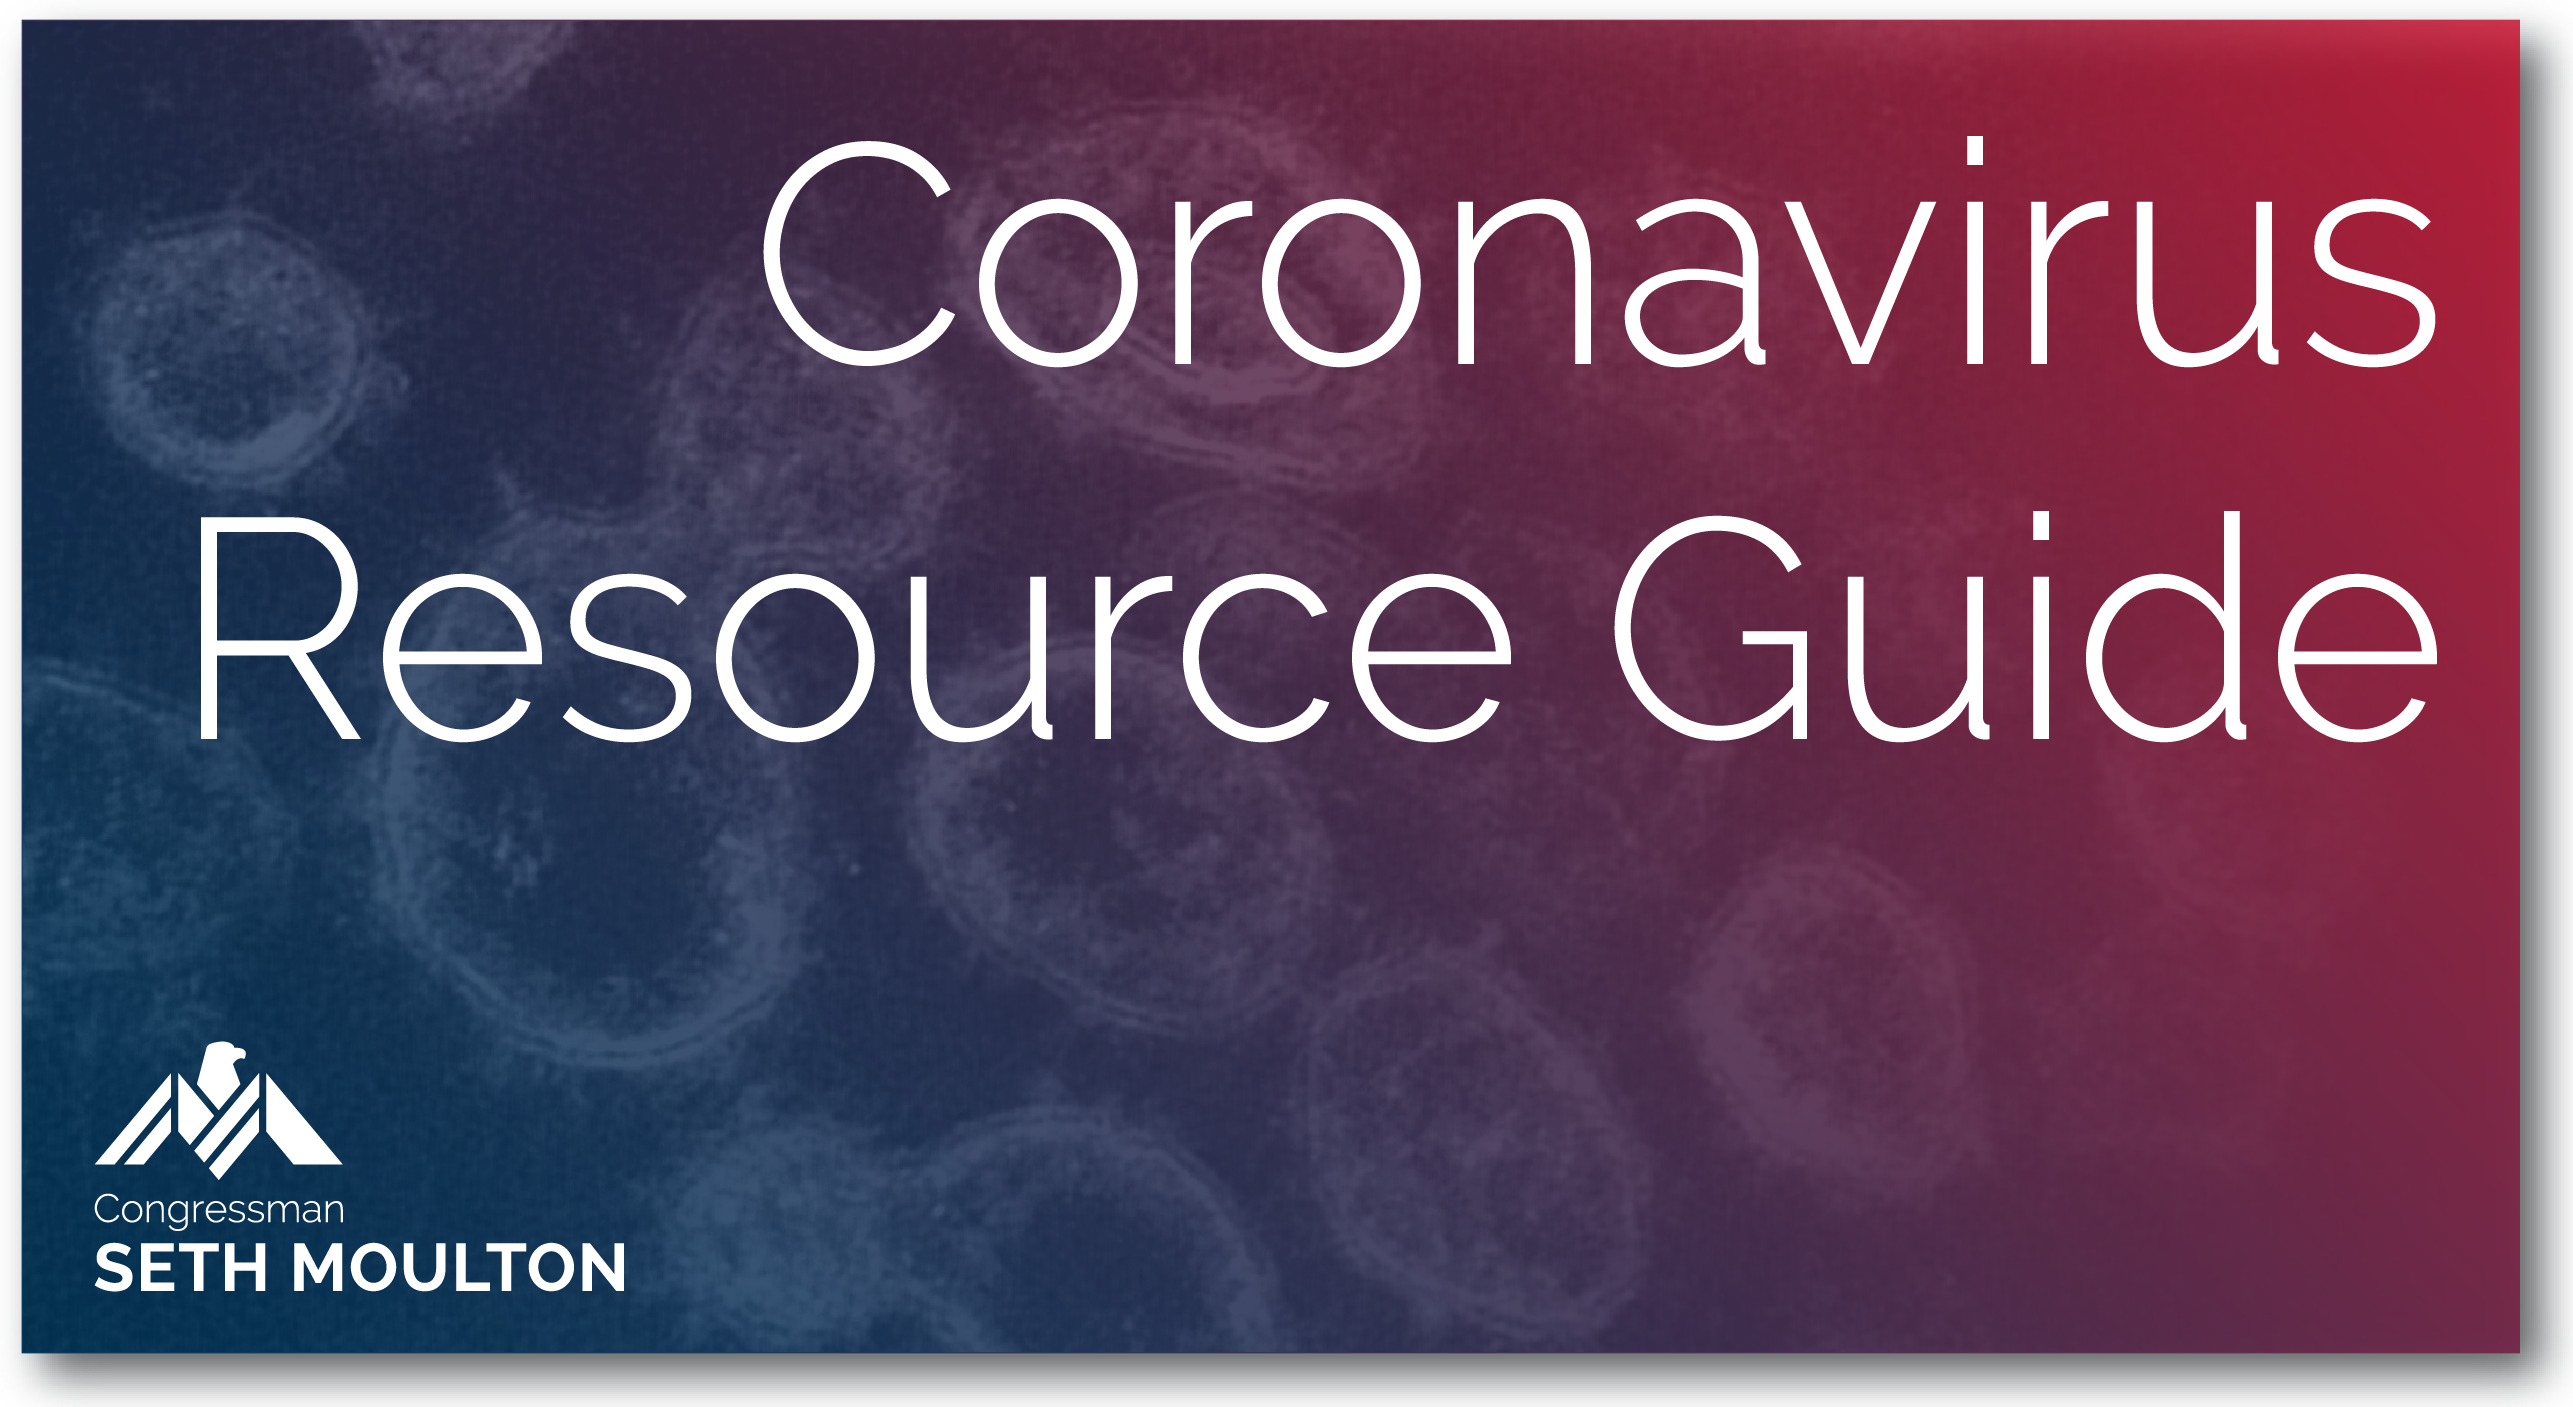 Coronavirus Resource Guide